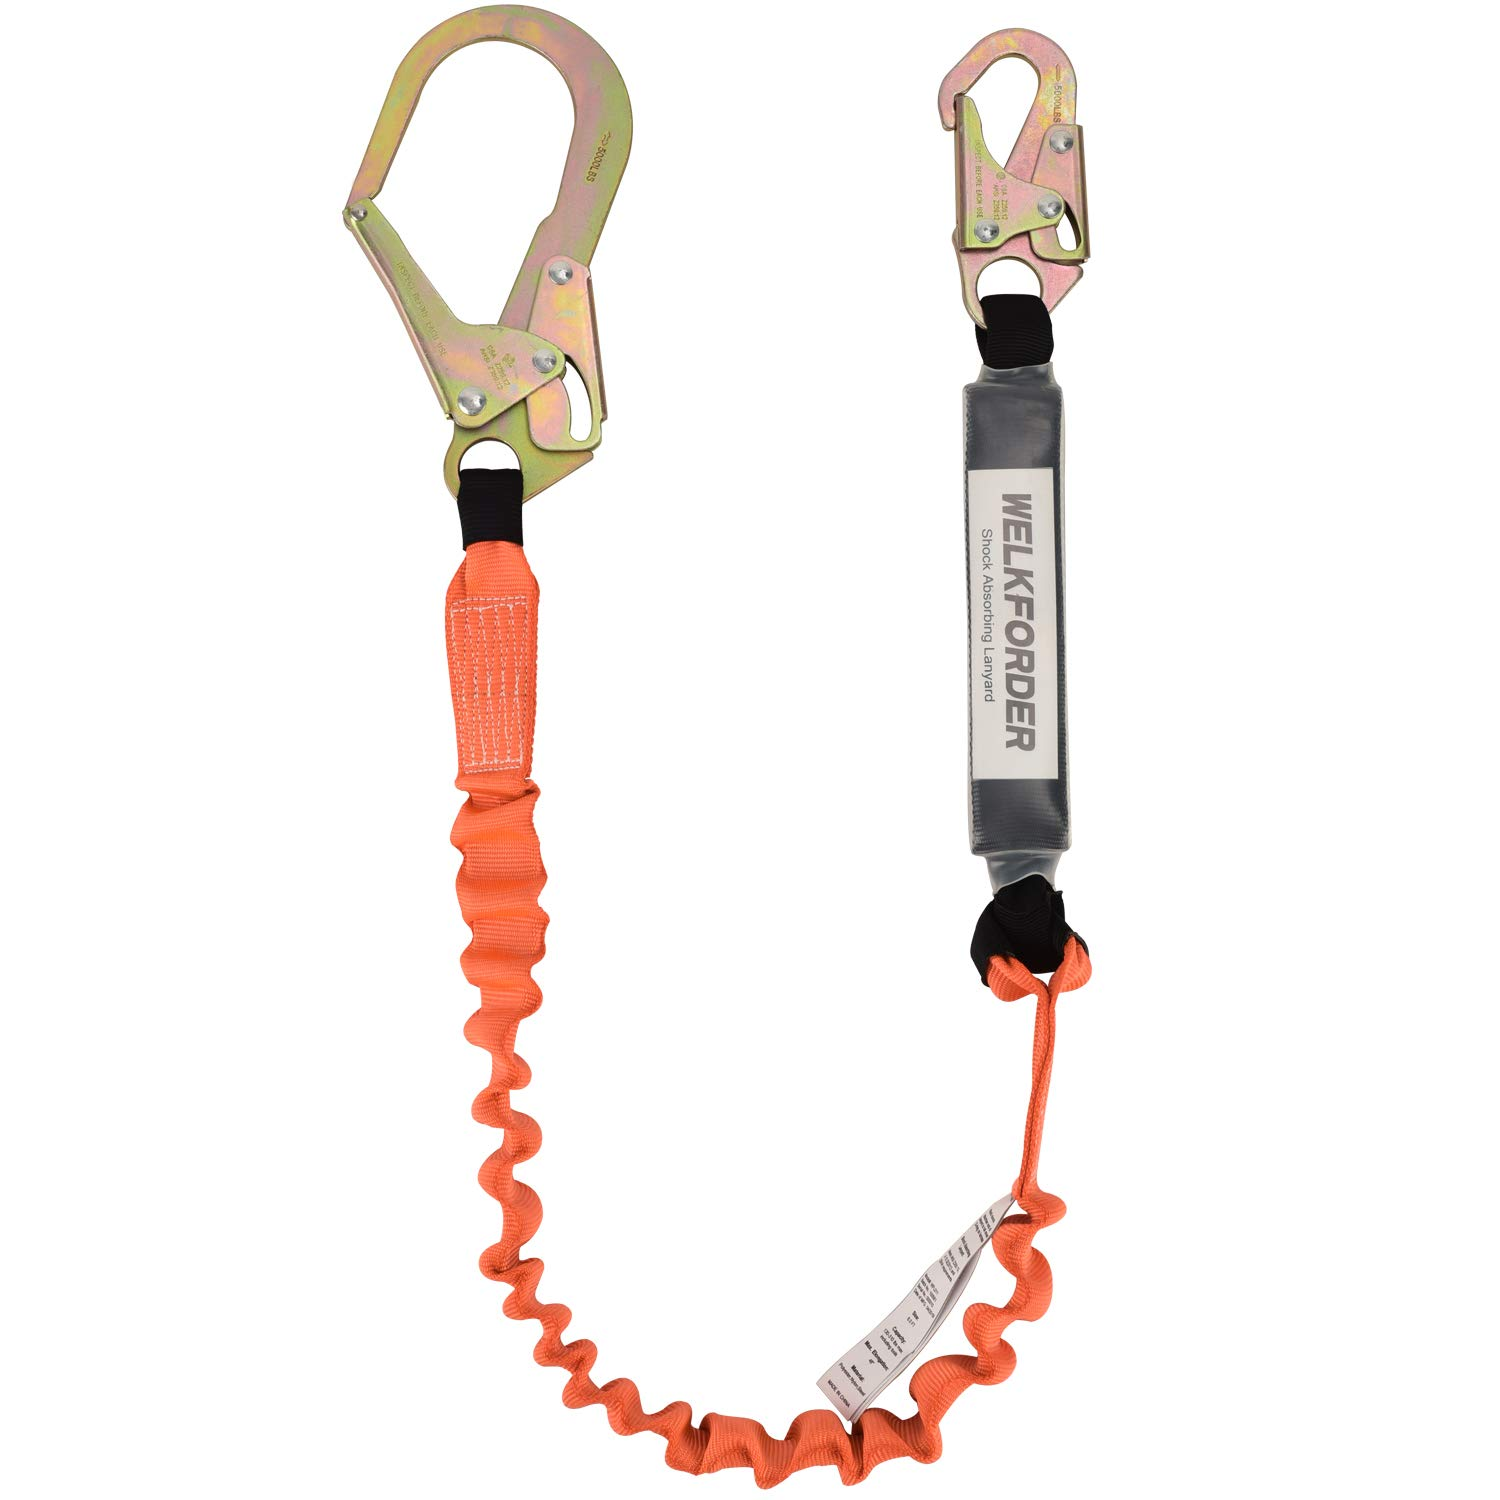 WELKFORDER Single Leg 6-Foot Fall Protection for Construction Shock Absorber Stretch Safety Lanyard with Snap & Rebar Hook Connectors ANSI Z359.13-2013 Complaint by WELKFORDER